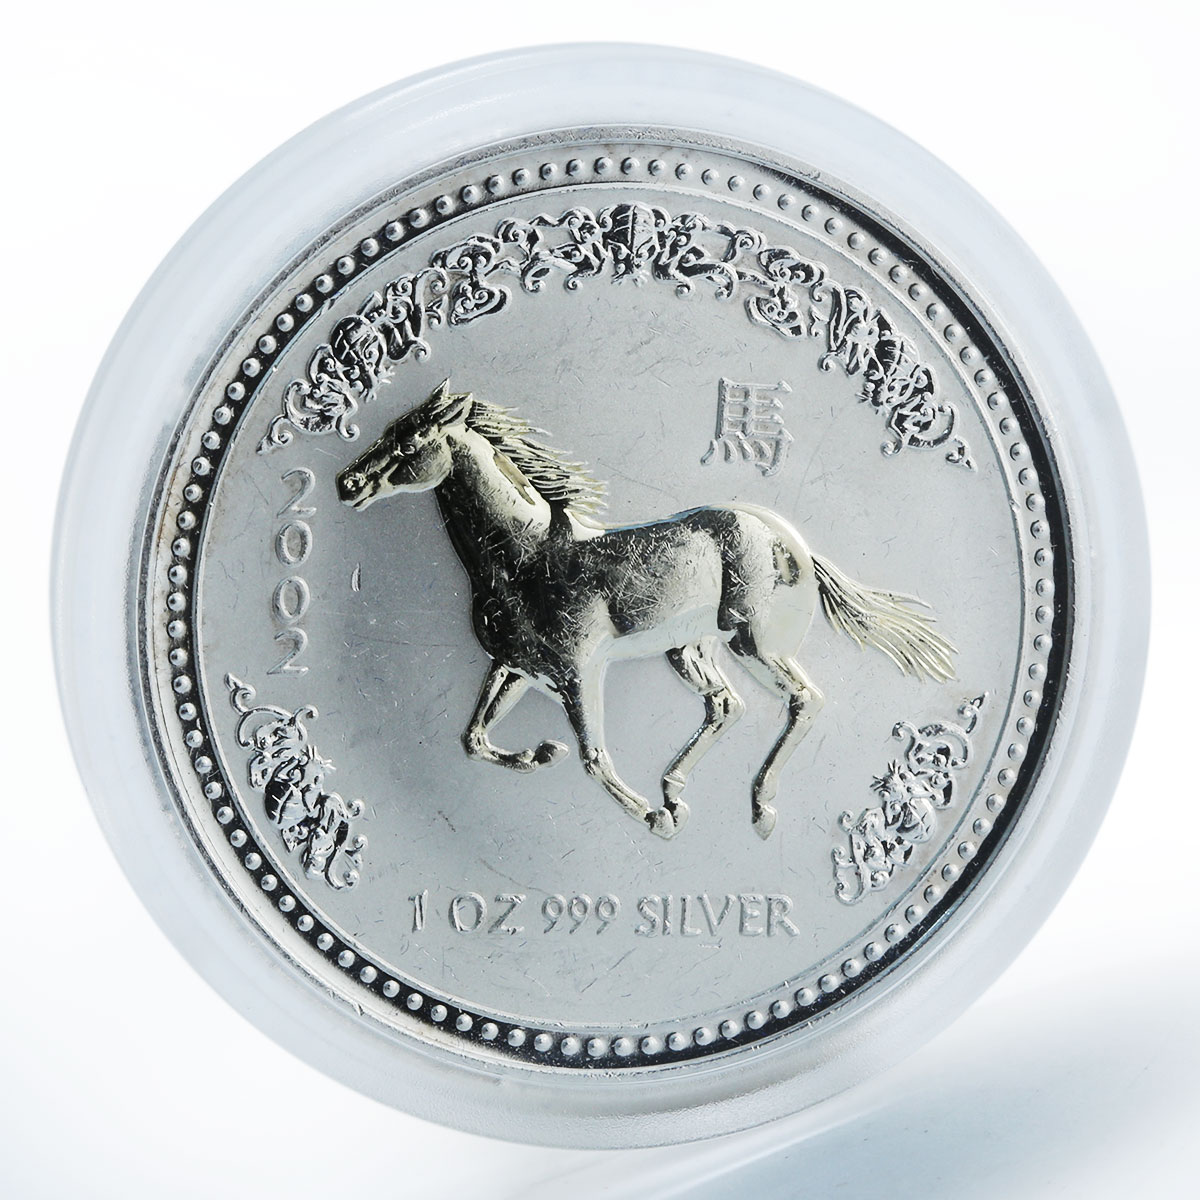 Australia 1 dollar Year of the Horse Lunar Series I 1 oz Silver Gilded coin 2002